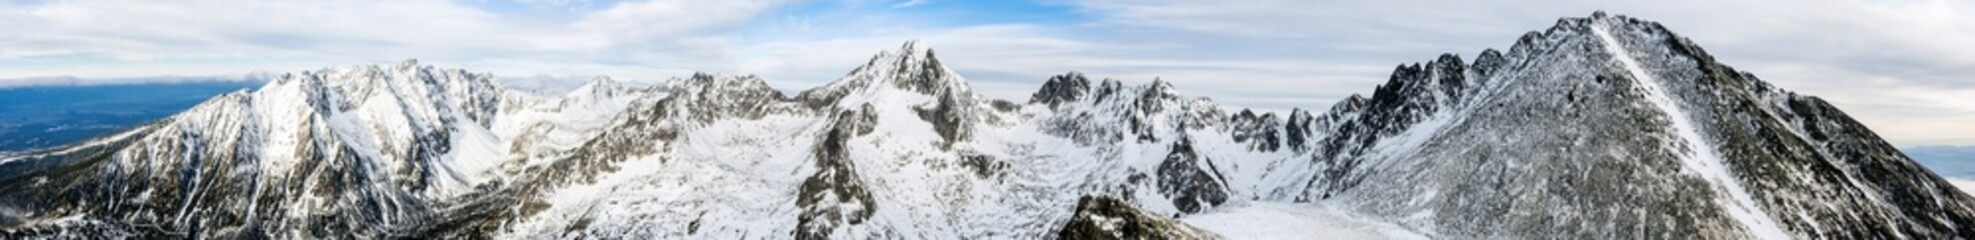 Jagged ridges in the High Tatras in winter.